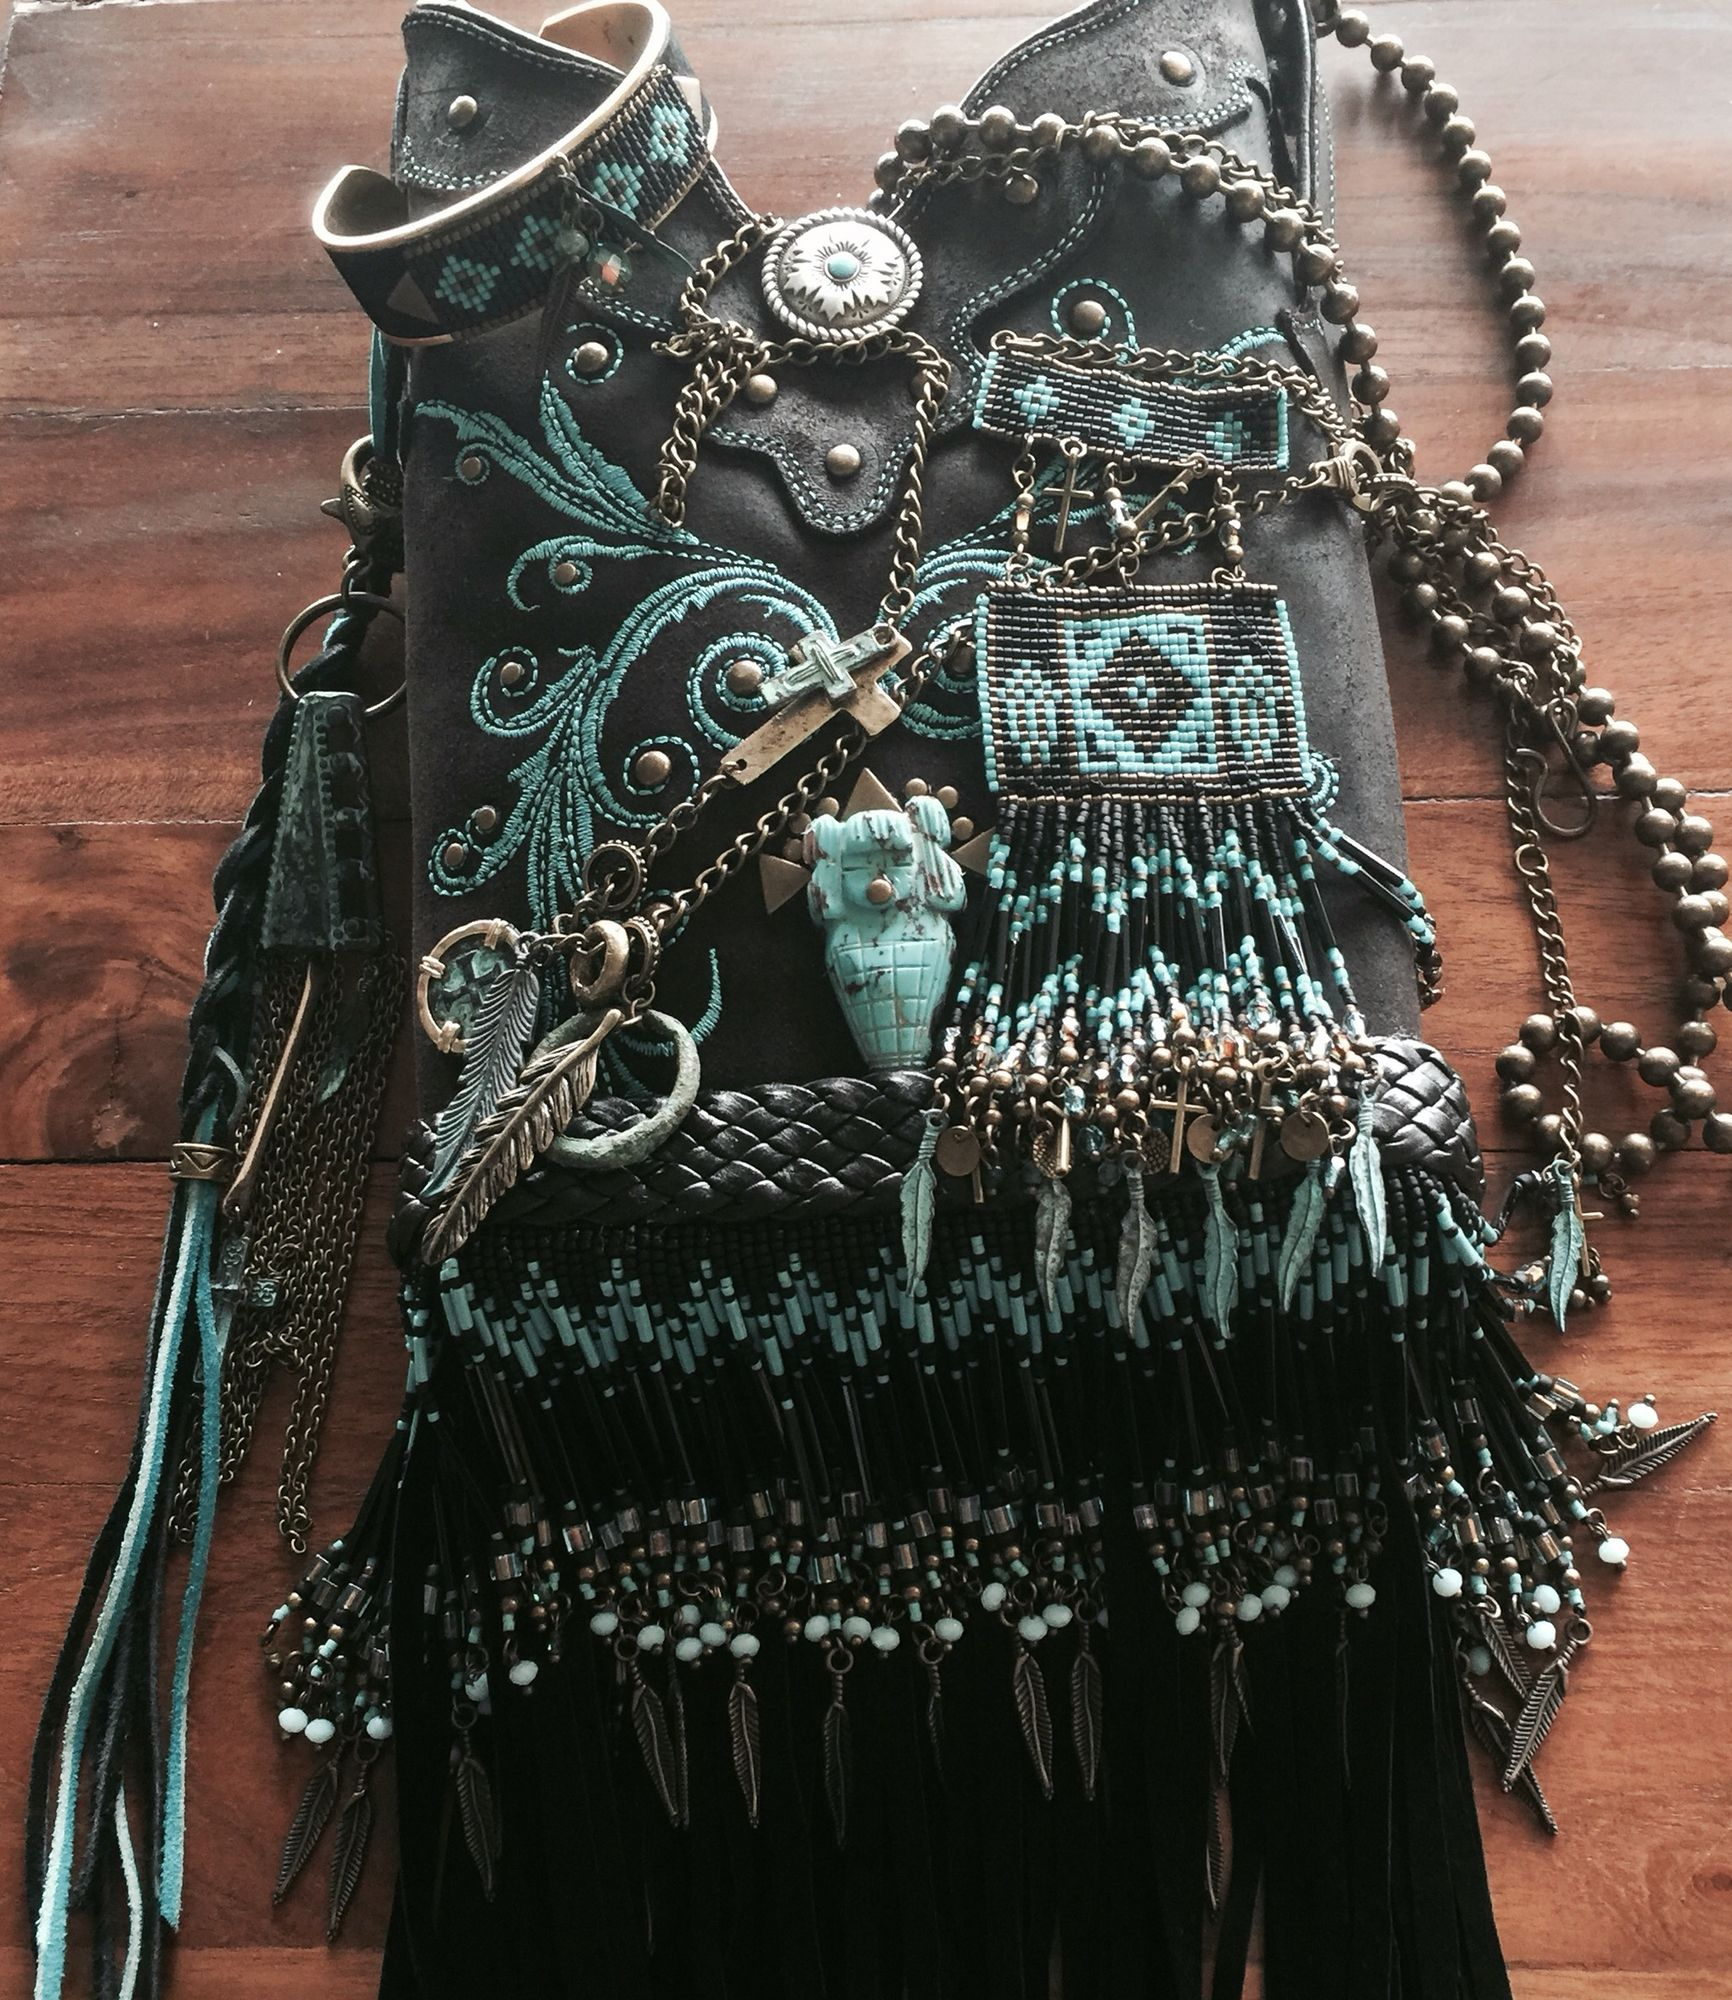 The original altered cowboy boot top purse from Debi Lynn Designs since 1994! Trademark copyright protected